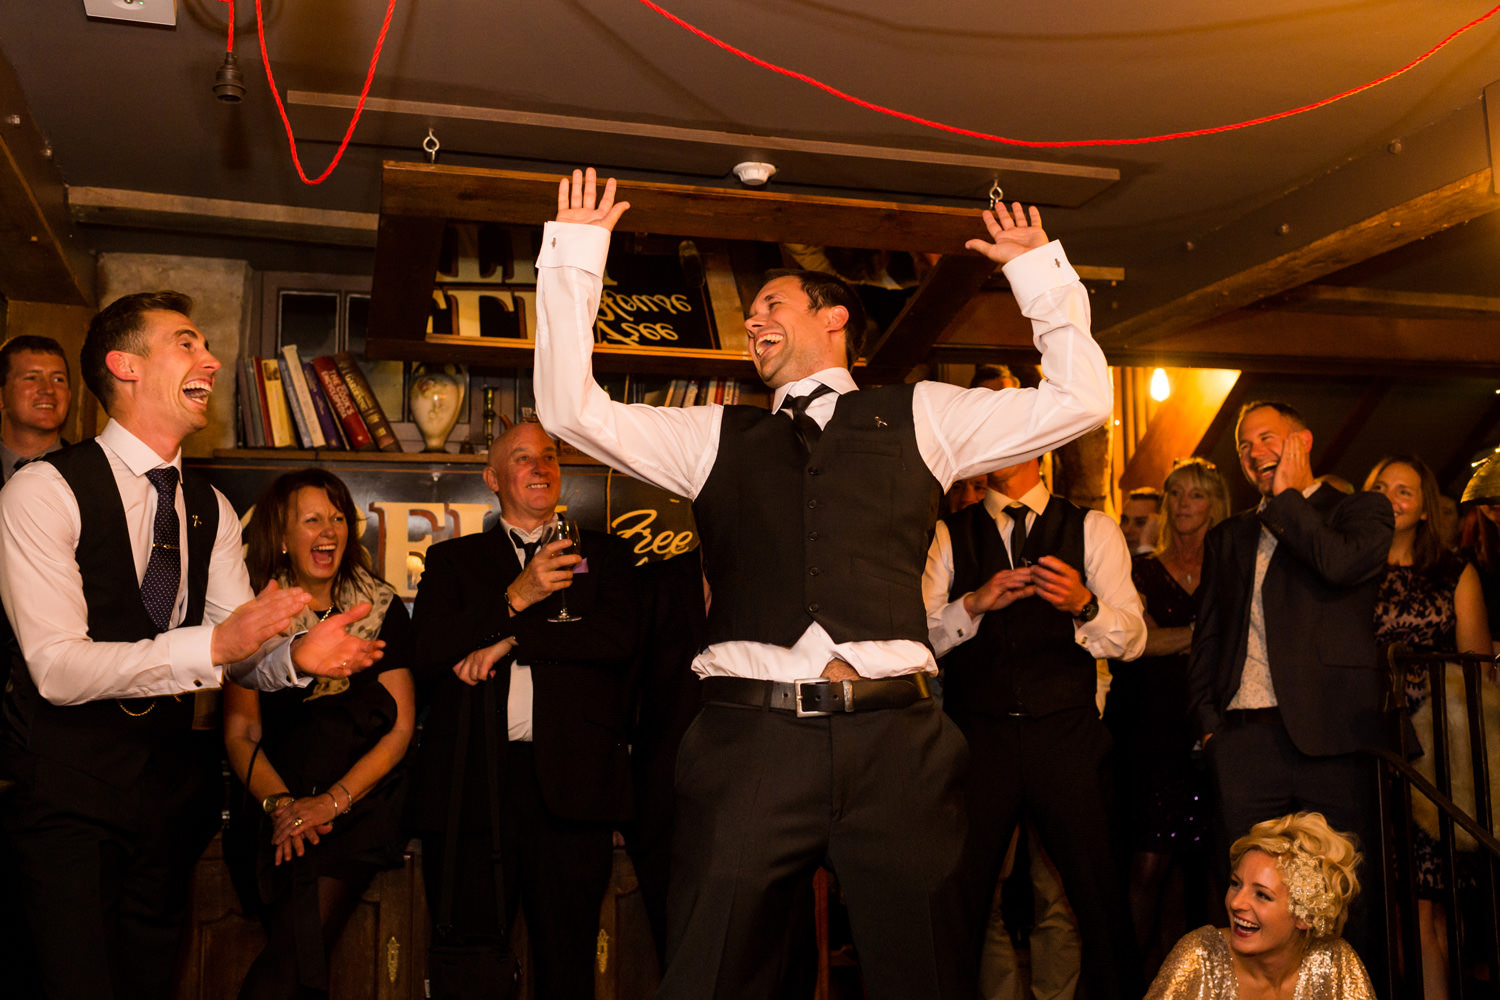 The-Bell-Inn-Ticehurst-Wedding-Photographer31